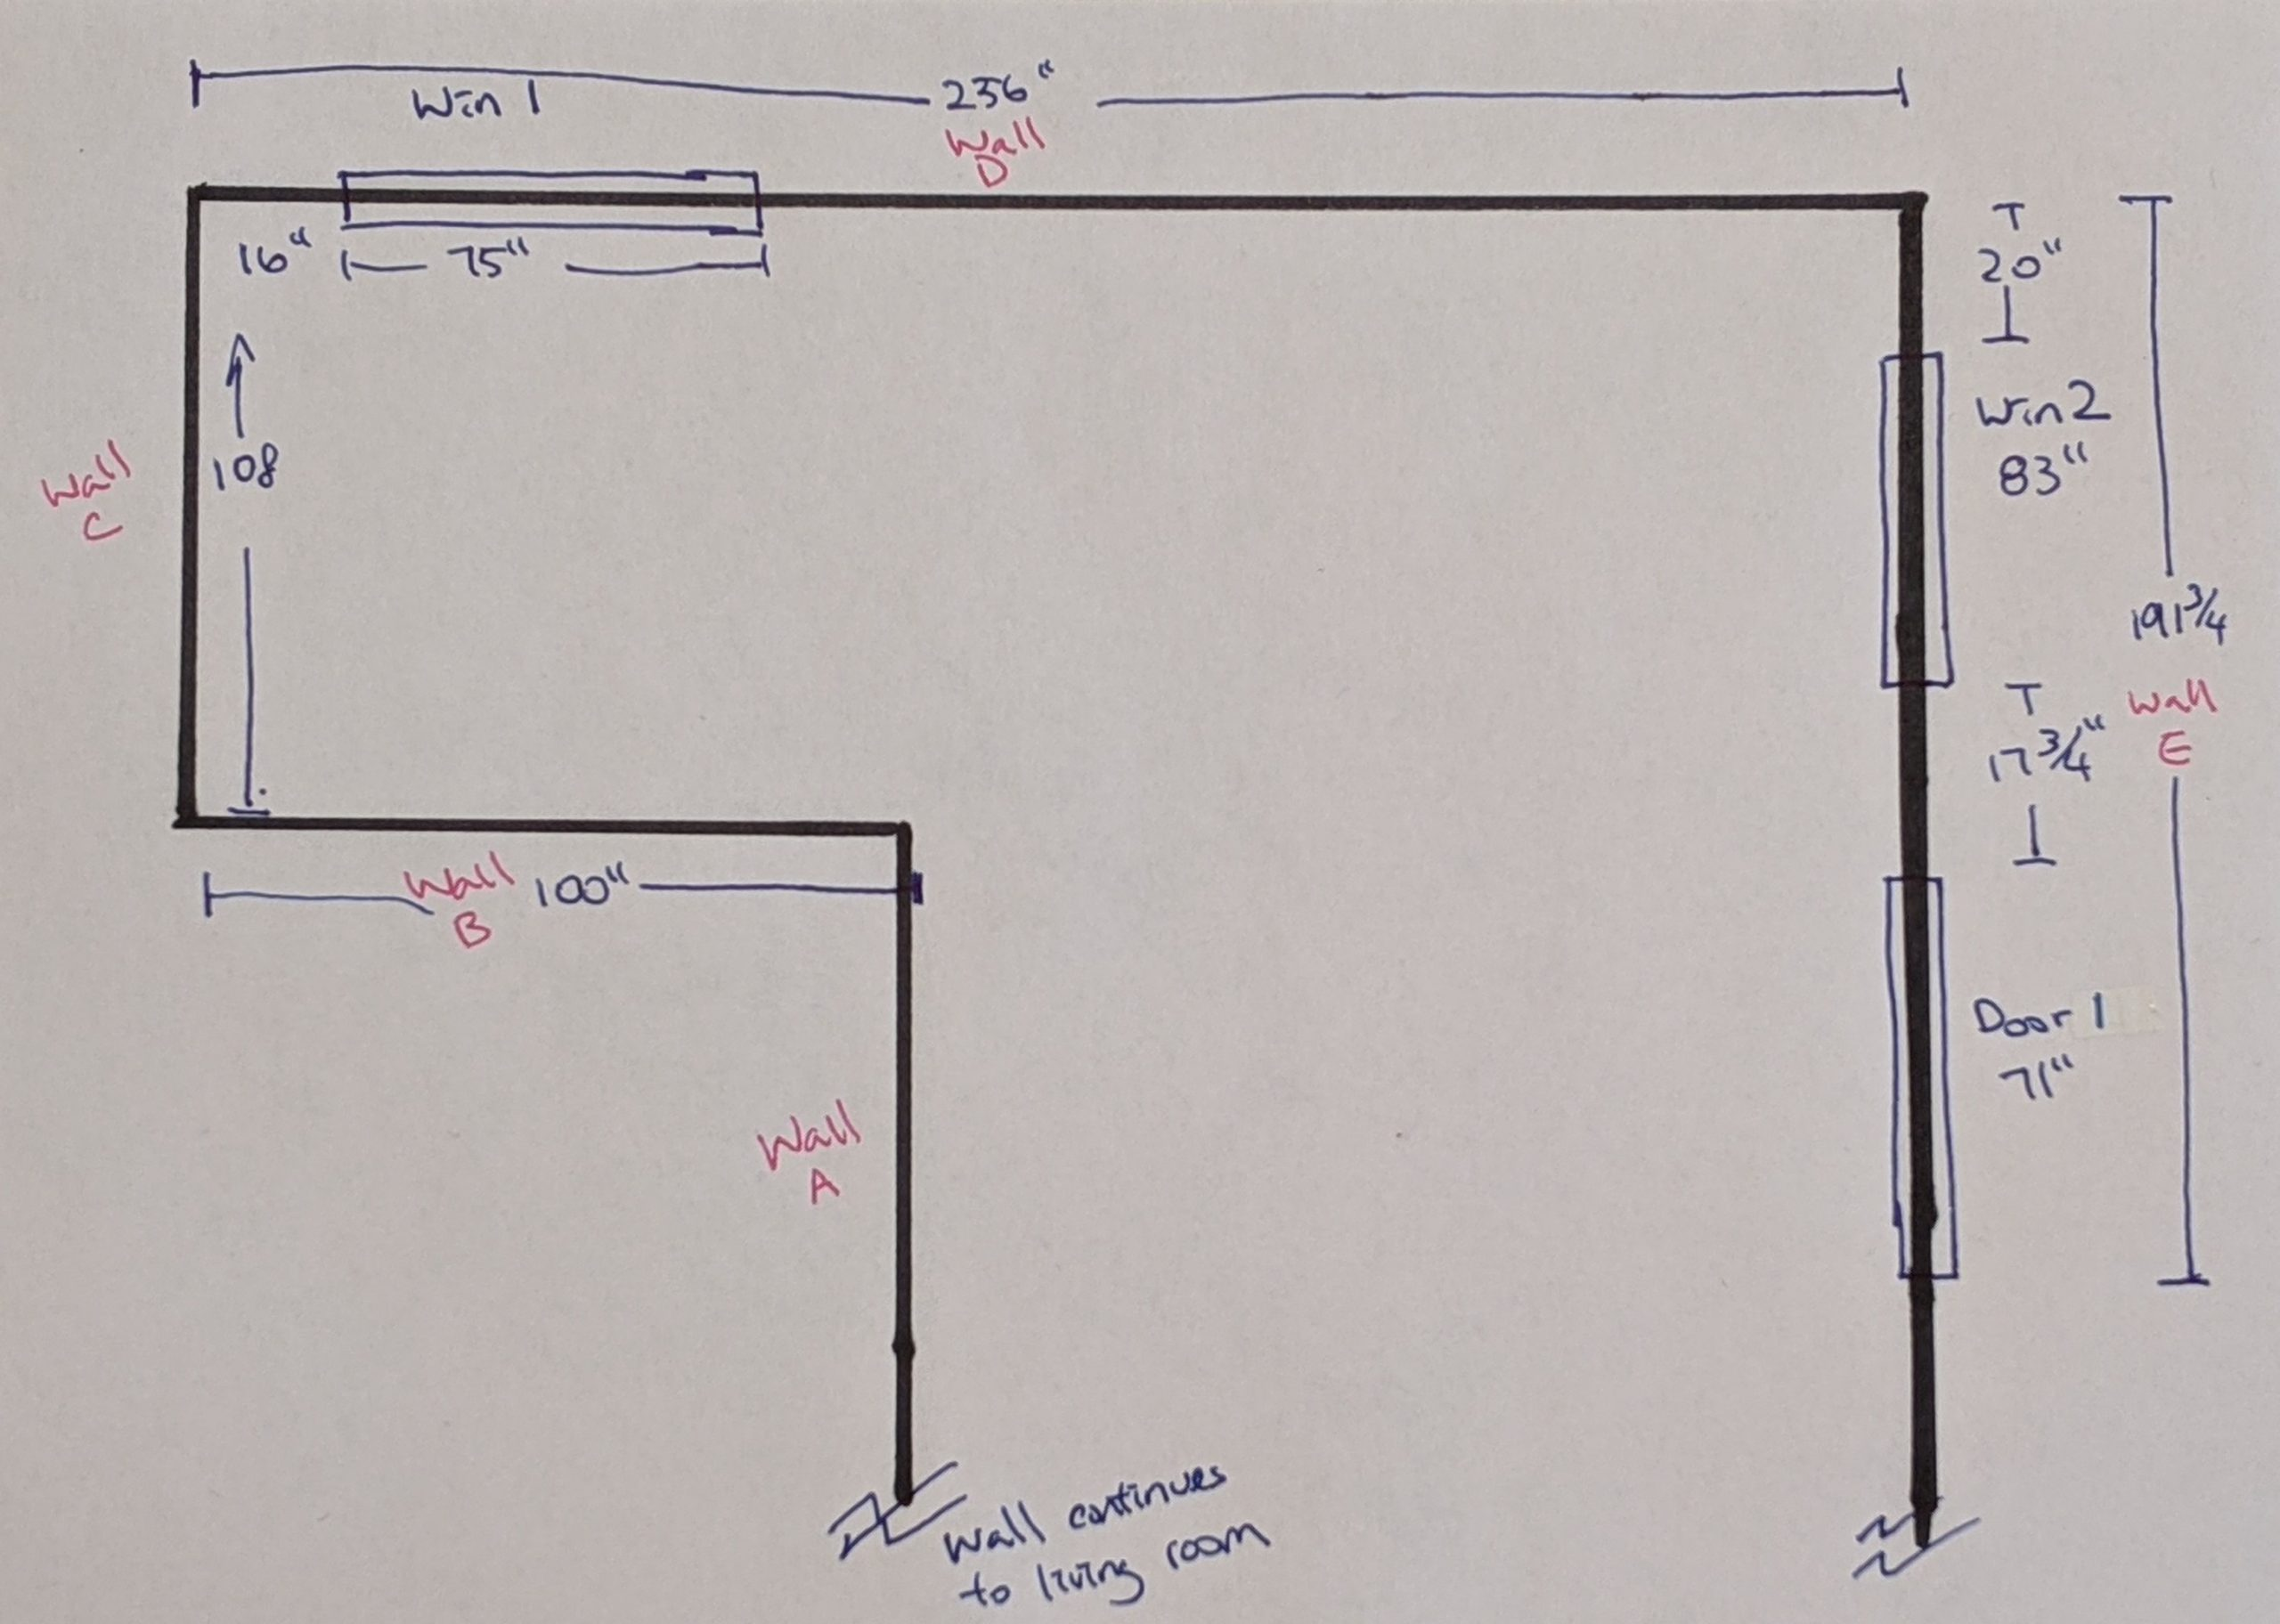 A sketch of a room with measurements for windows and door openings